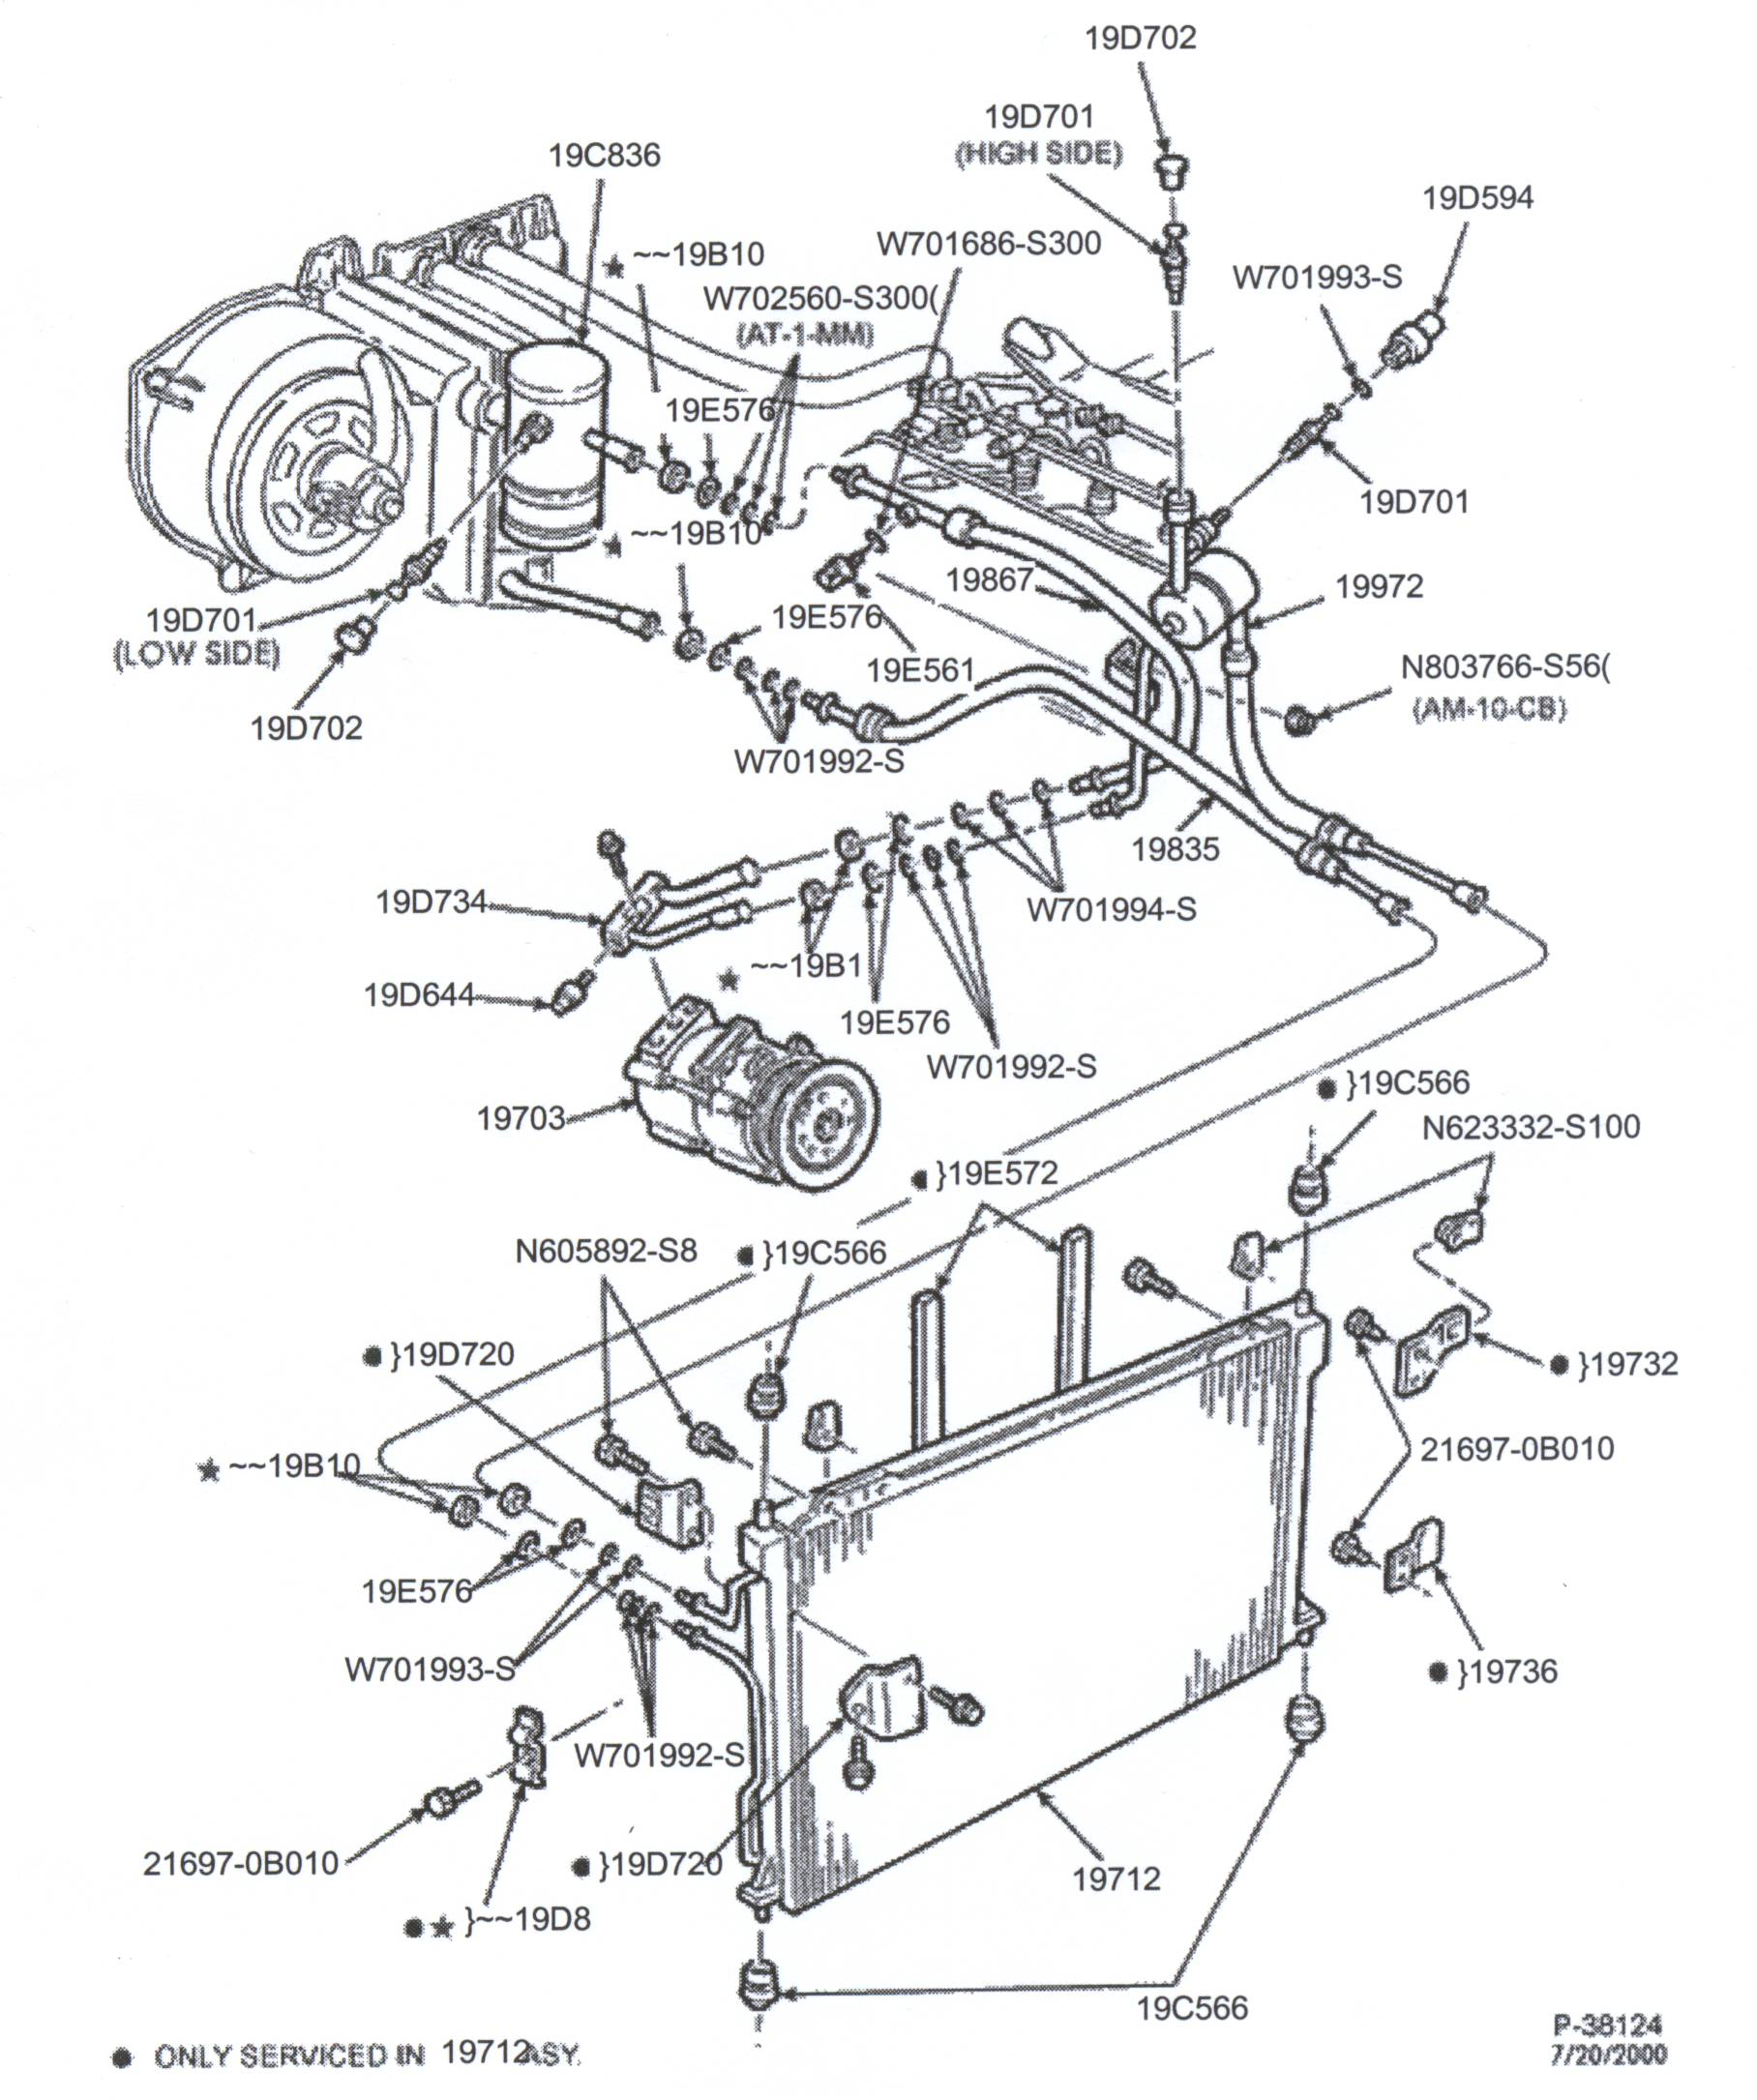 2003 Ford Escape Radio Wiring Diagram additionally Ford F350 Axle Diagram as well F 150 Trailer Wiring Diagram as well 1997 Chevy Truck Fuses furthermore 249205 Looking Wiring Diagram Under Hood Fuse Box Efan Help. on ford excursion wiring diagram